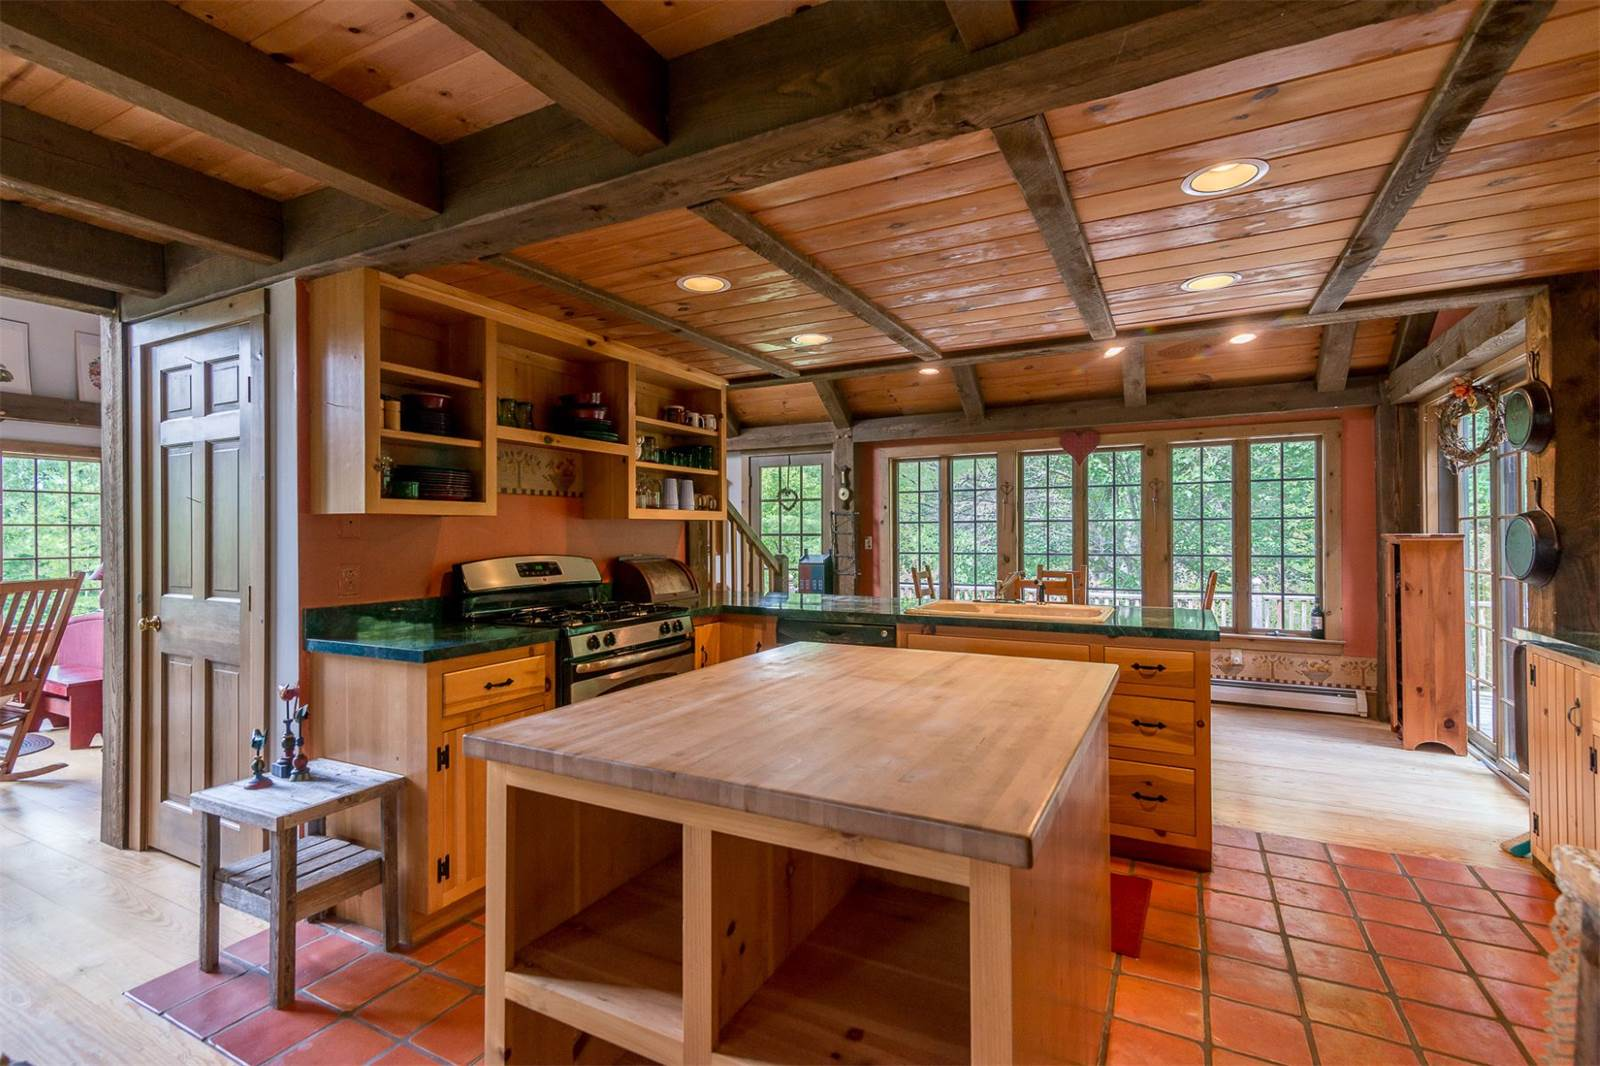 Bright and airy cabin in the vermont mountains wants 399k for Cooper s cabin park city